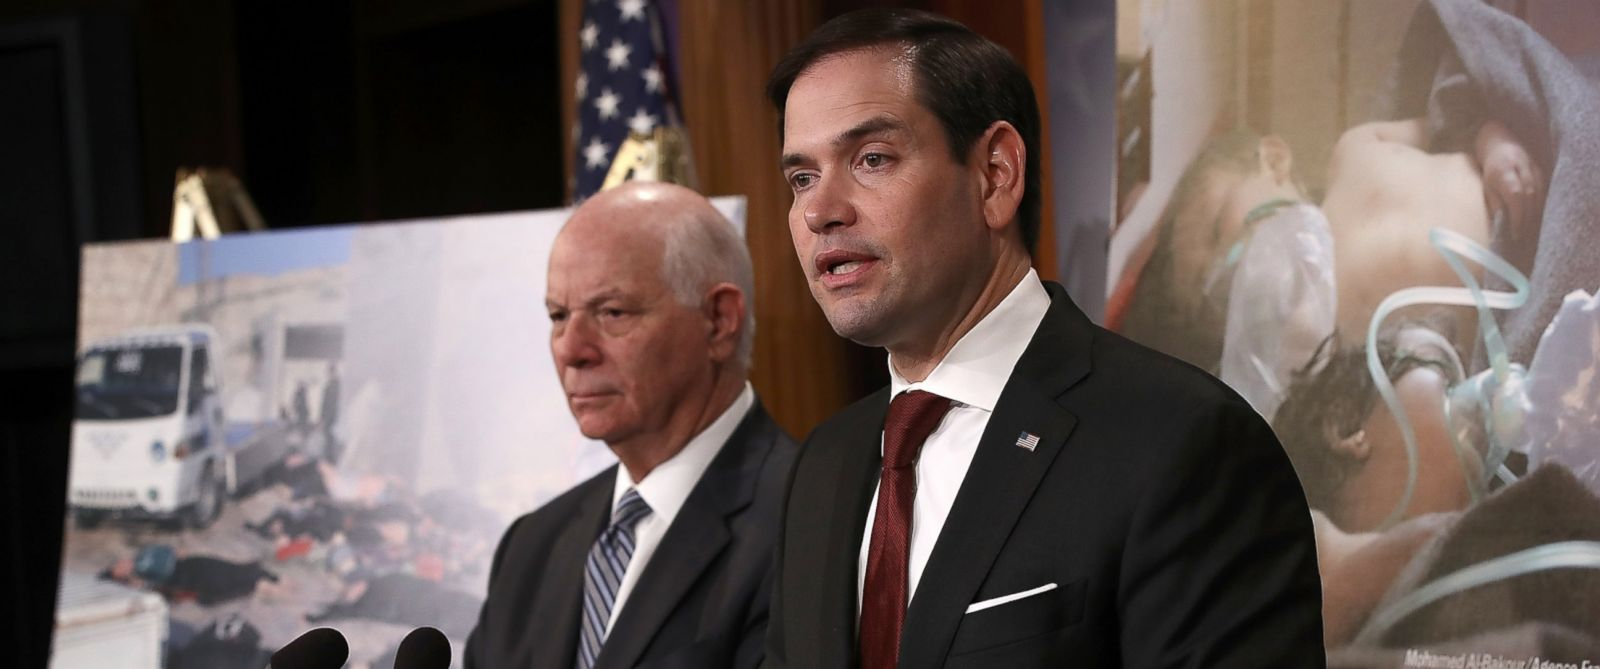 PHOTO: Sen. Marco Rubio speaks during a press conference at the U.S. Capitol, April 5, 2017, in Washington.